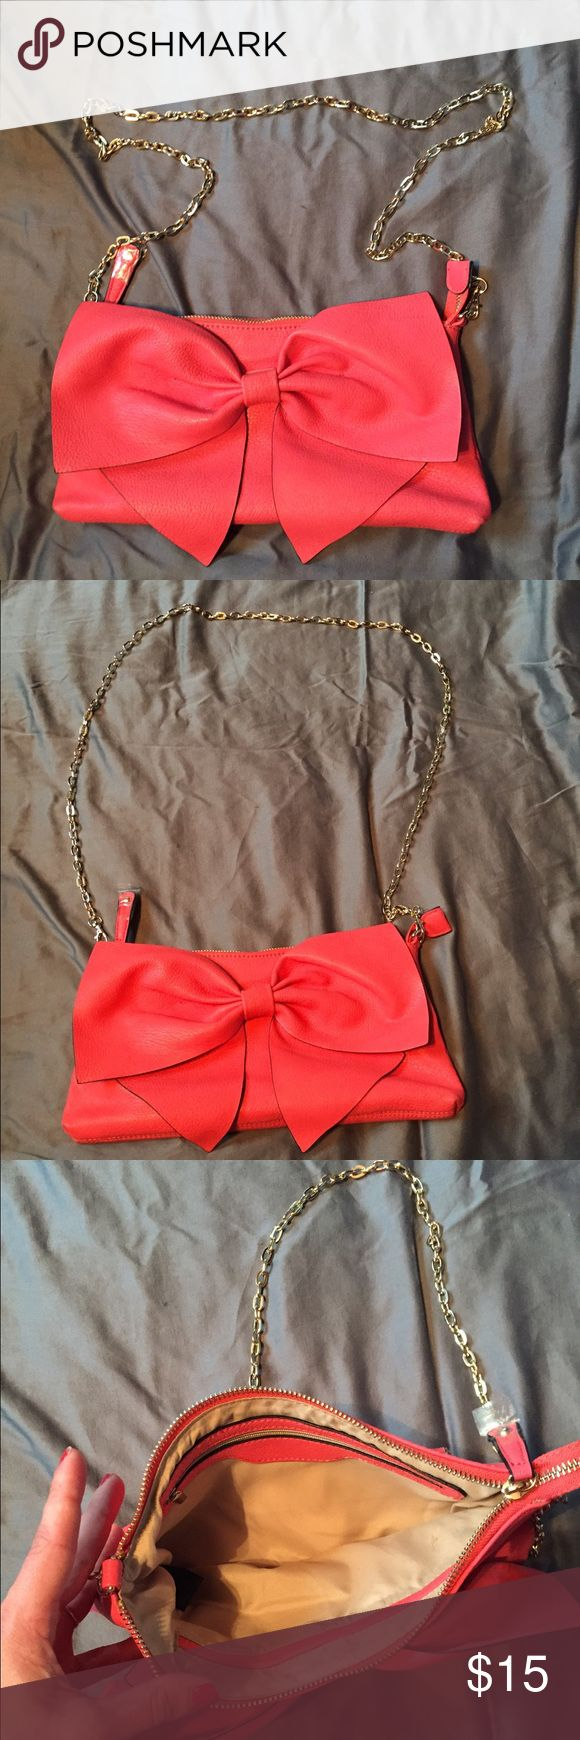 "Coral Bow Handbag Beautiful Coral Bow bag. Purchased from Just Fav a couple years ago but I never ended up wearing it. Still has the plastic on the zipper pull. It has two smaller pockets on the inside and one larger pocket that has a zipper. 12"" inches across and 6"" inches in height. Beautiful gold chain that's also removable if you wanted to wear this bag as a clutch! Priced to sell. Price is firm. It's so gorgeous and versatile! Perfect for summer! 😍 JustFab Bags"